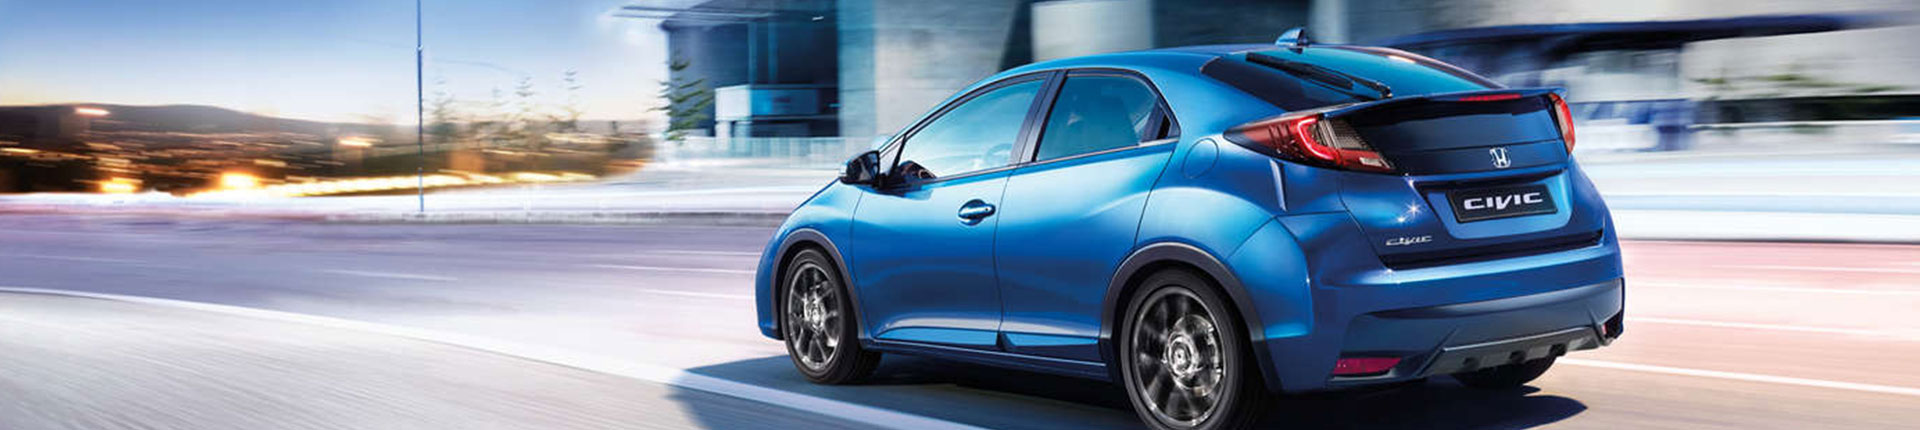 civic-slider1